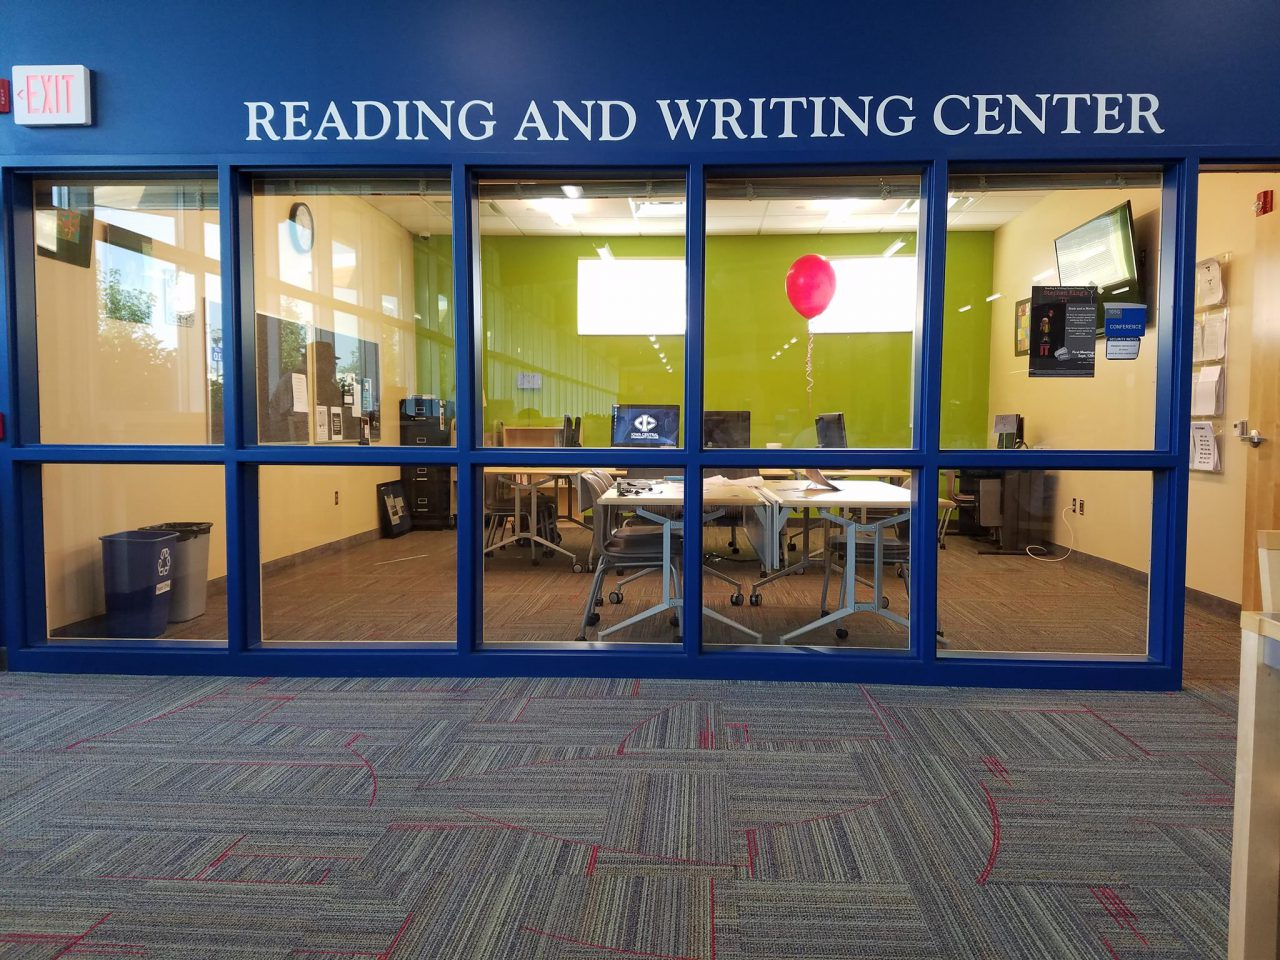 Reading-and-Writing-Center-1280x960.jpg